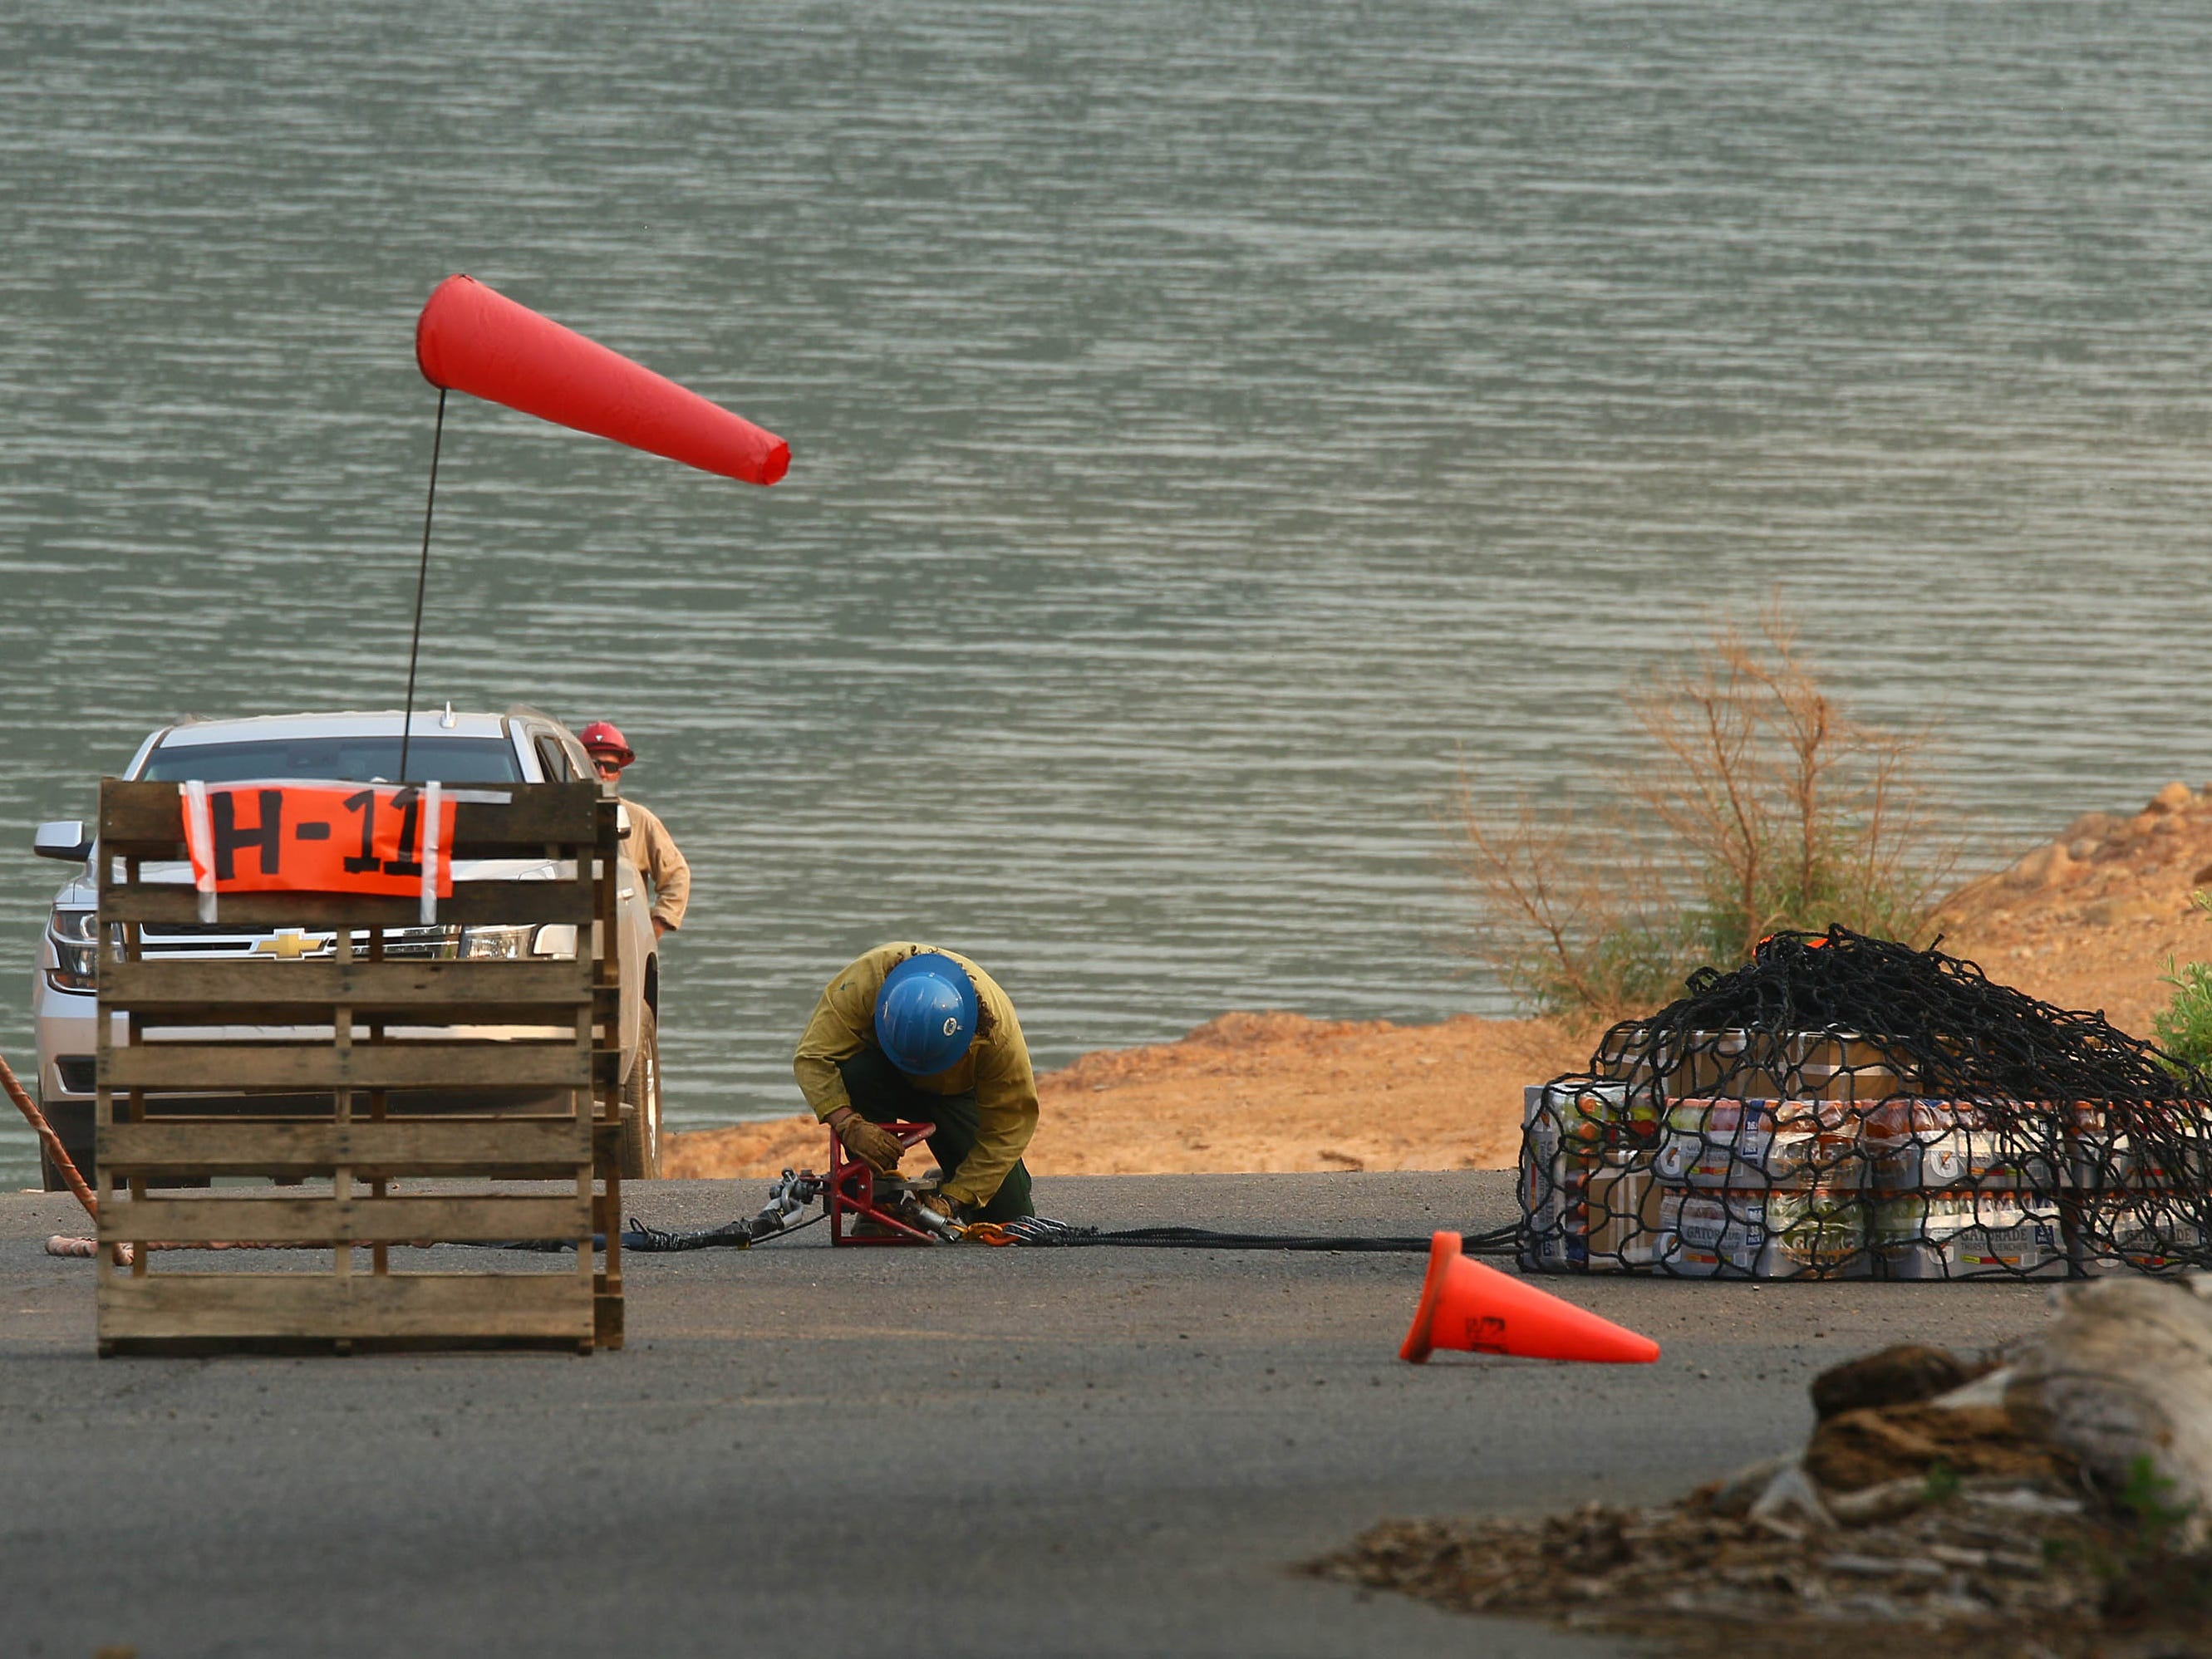 A fire crew on Saturday, Aug. 18, 2018 hooks up a net containing supplies for the pilots operating the helicopters at near the Hirz Bay boat ramp. (Special to the Record Searchlight/Hung T. Vu)